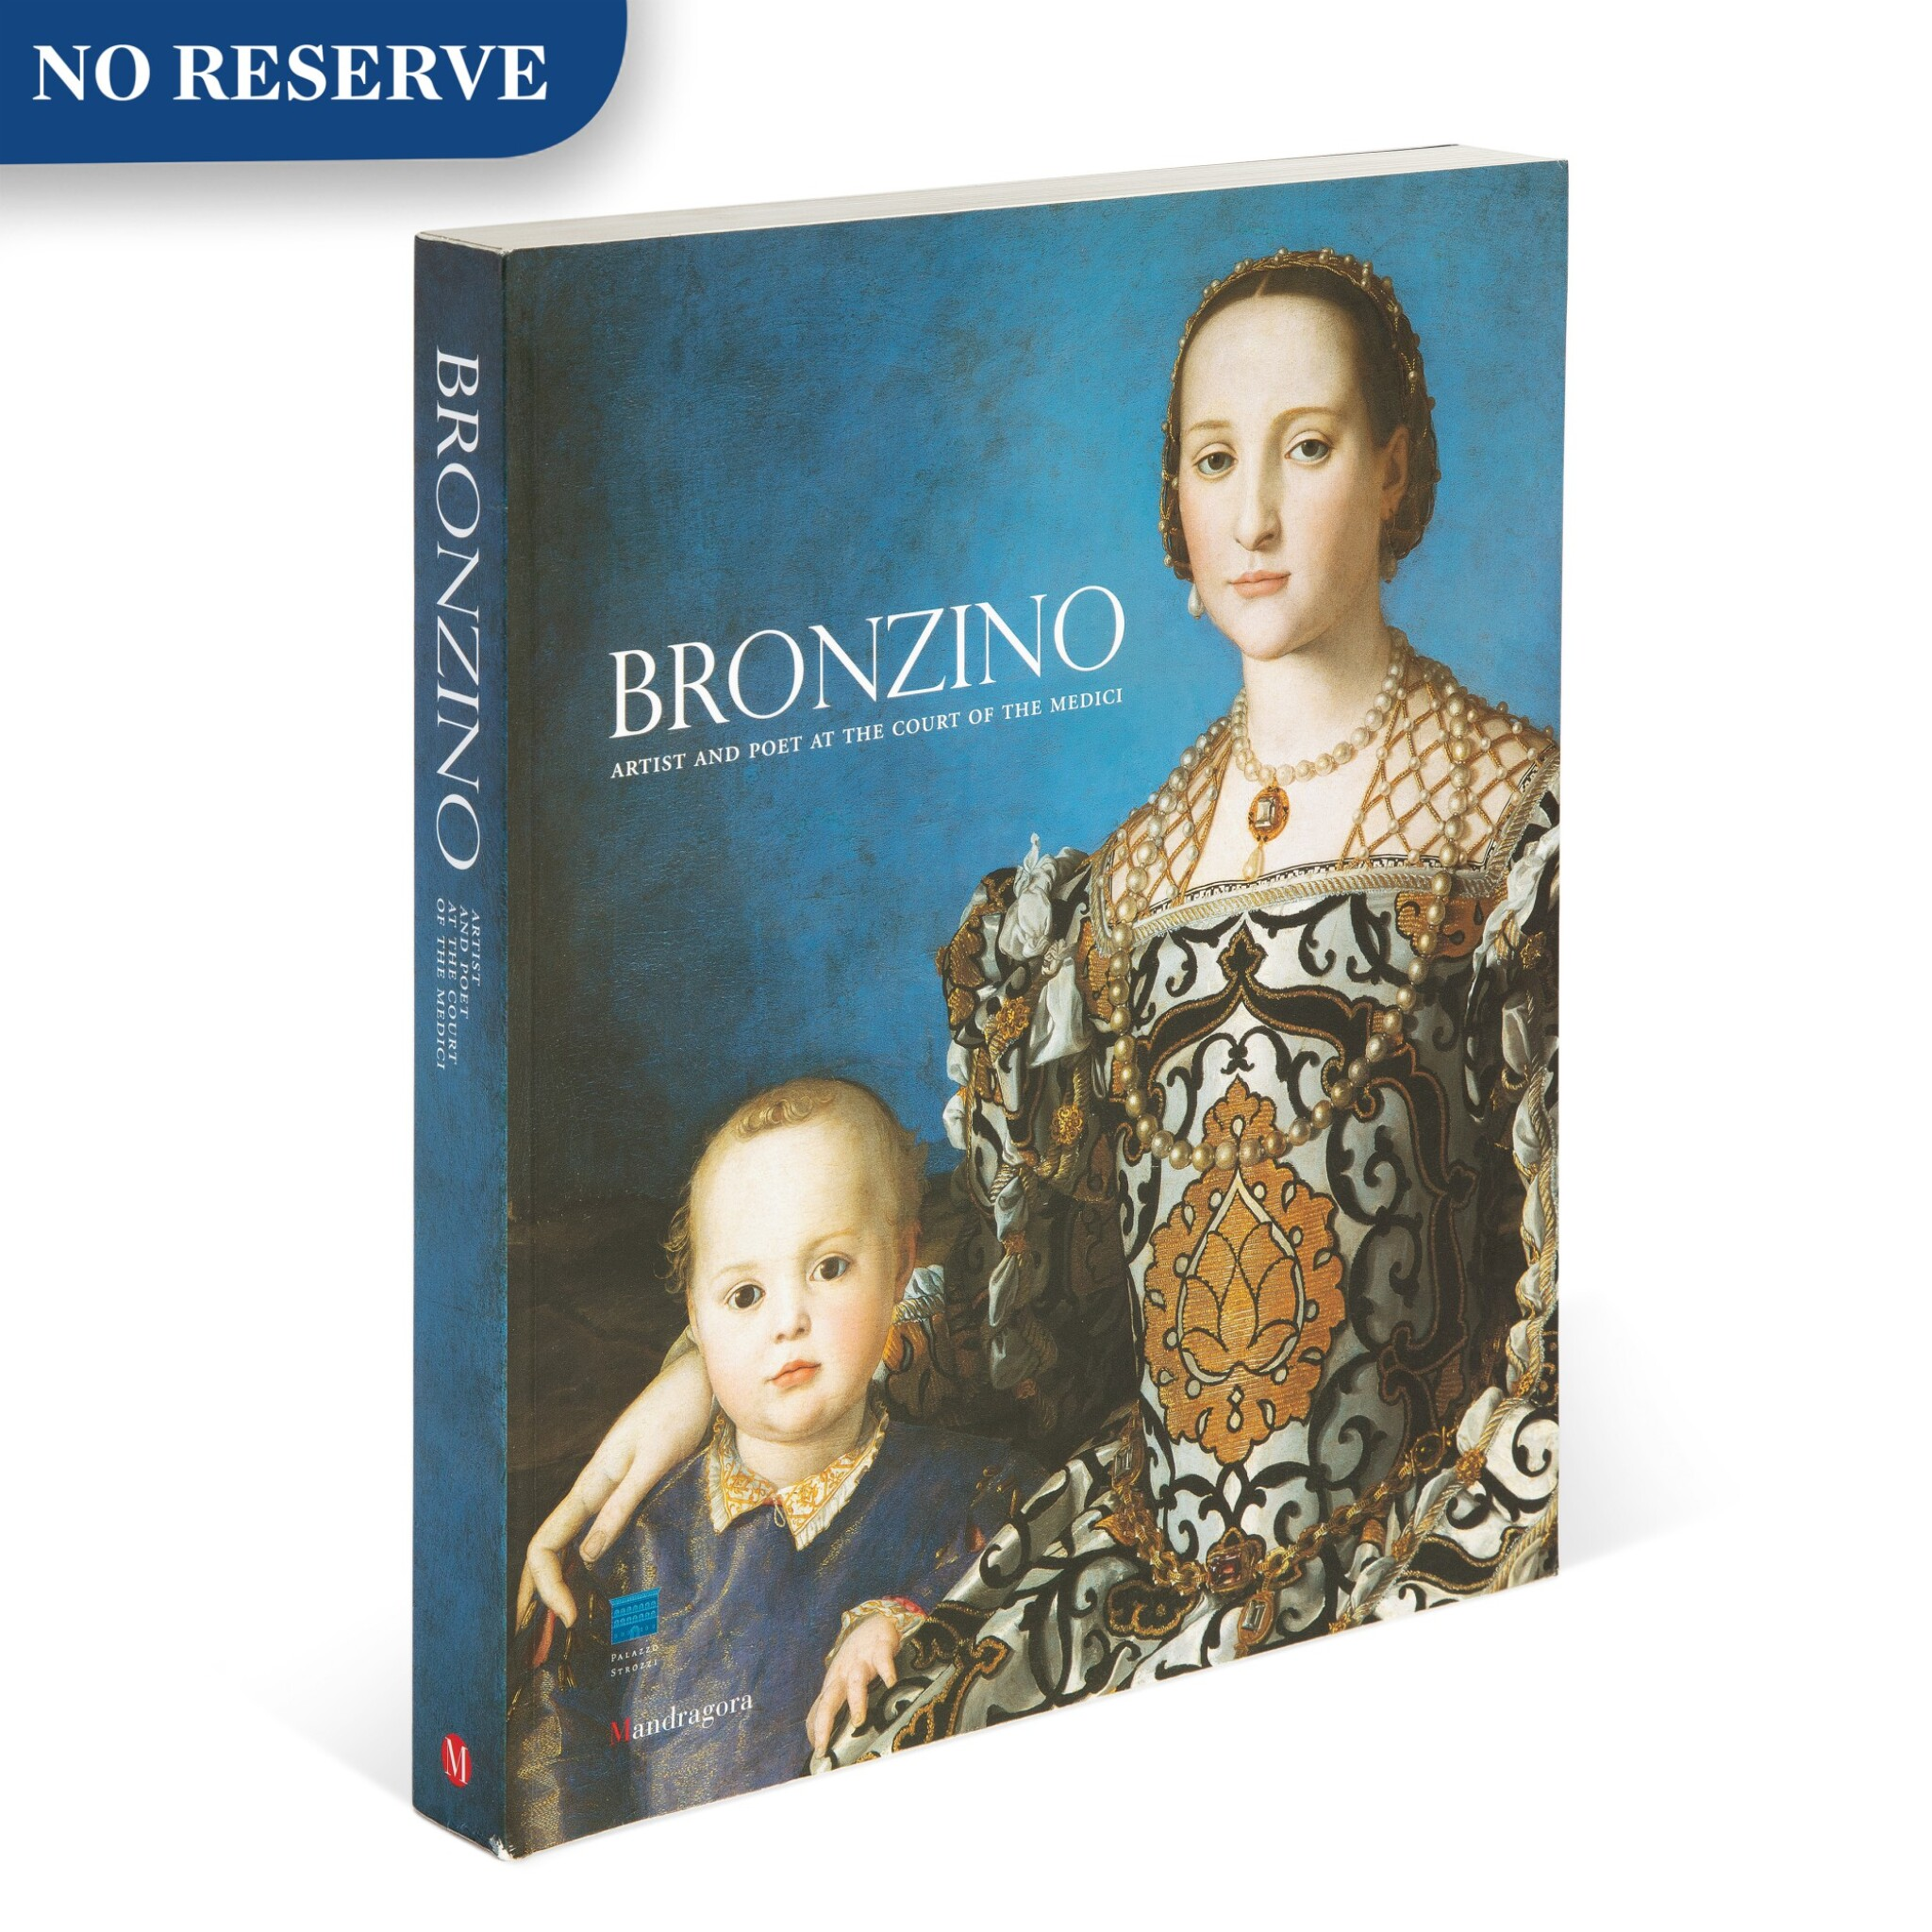 A Selection of Books on Agnolo Bronzino and Alessandro Allori